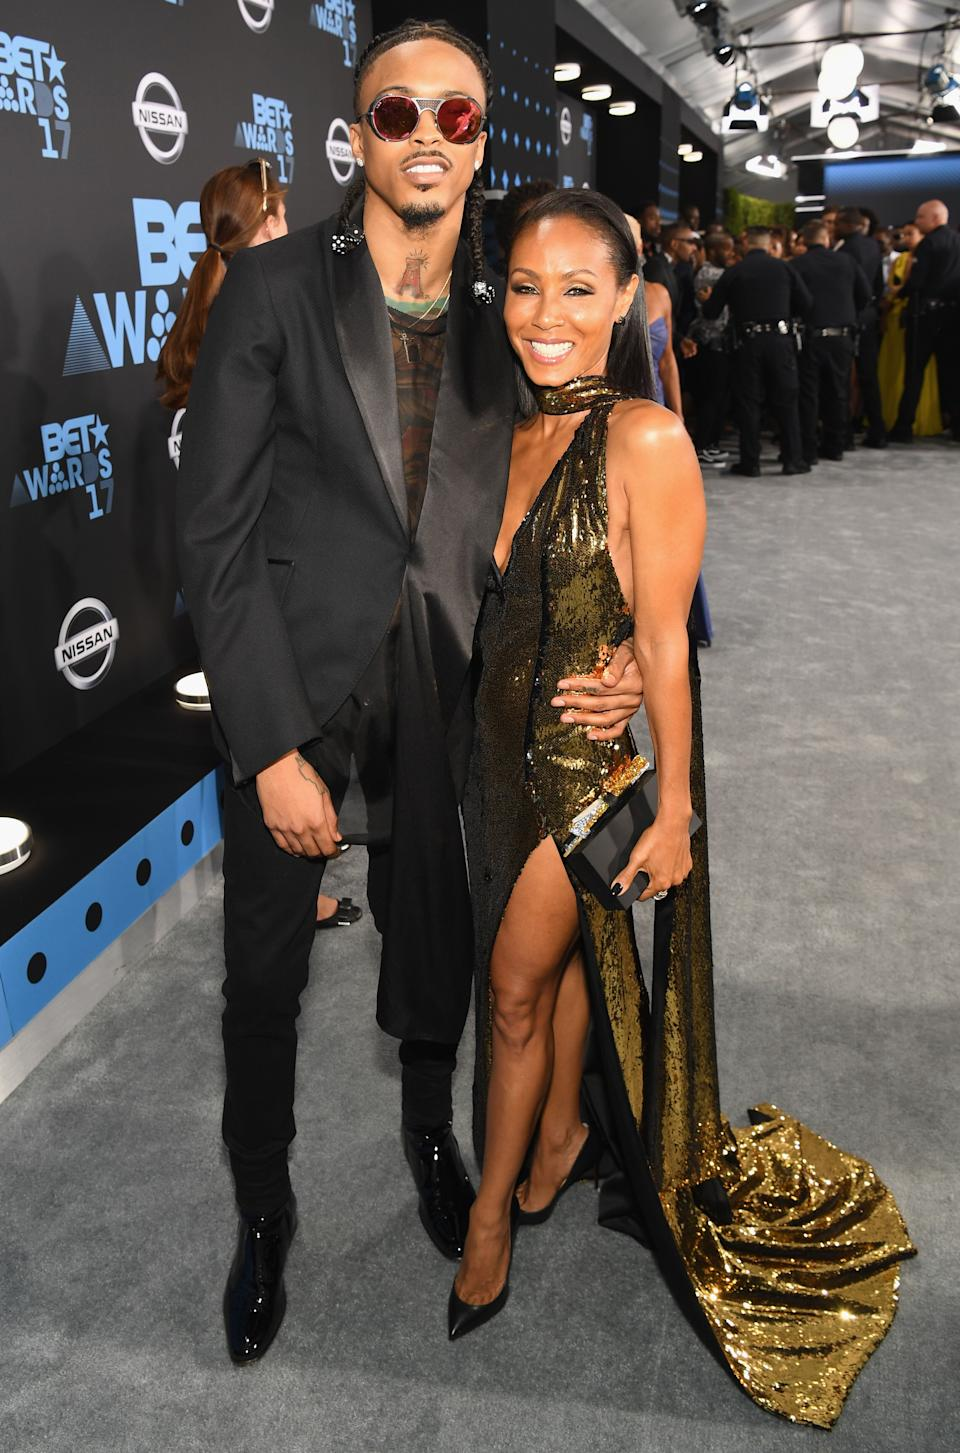 August Alsina and Jada Pinkett Smith at the 2017 BET Awards. (Photo: Paras Griffin via Getty Images)